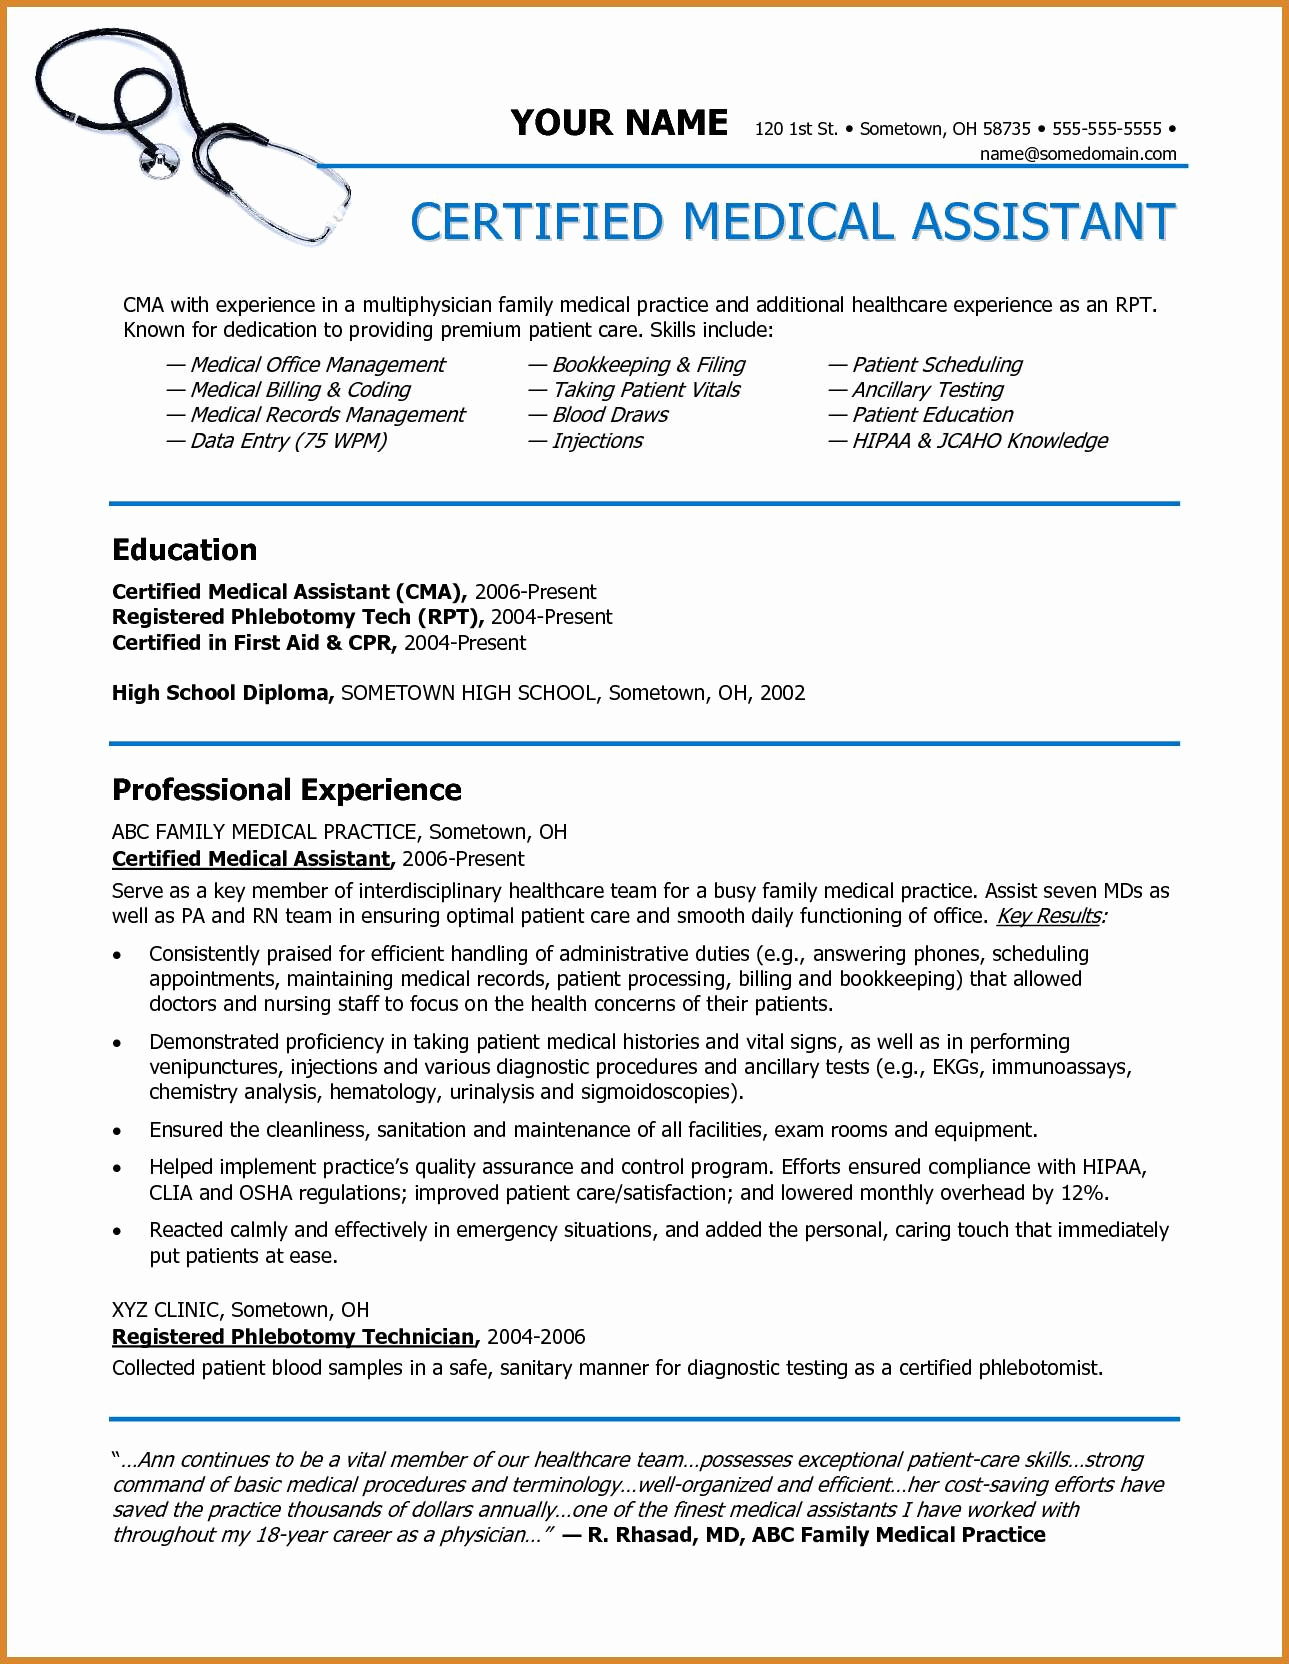 medical scribe resume 2 medical scribe resume examples foodcity me